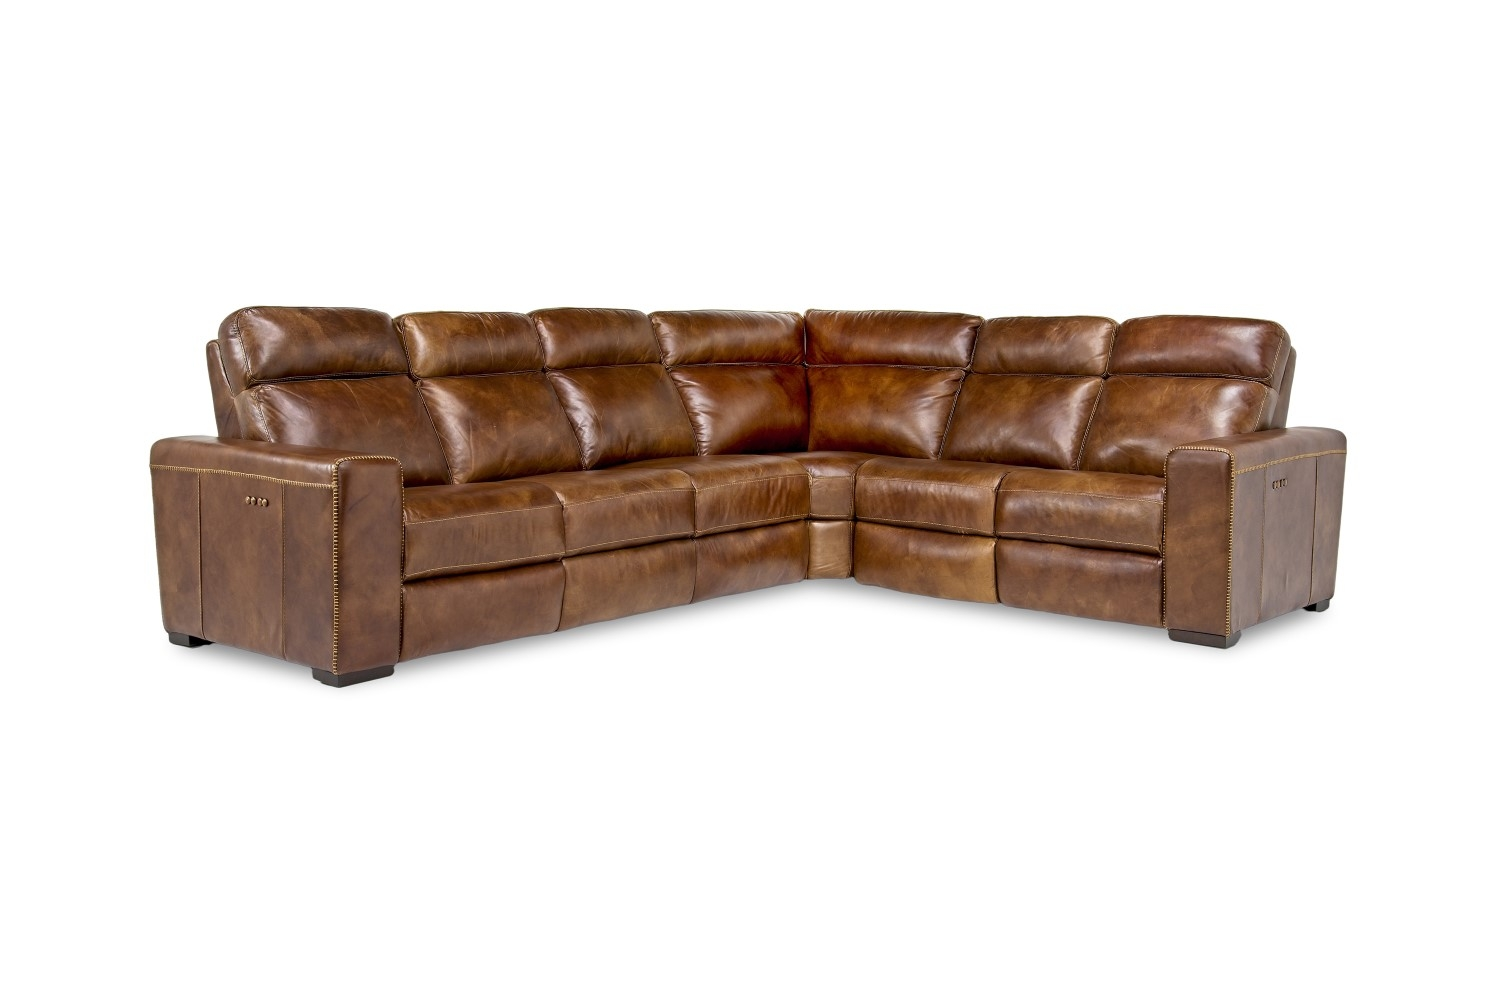 West Coast S Home Furniture Store Mor Furniture For Less